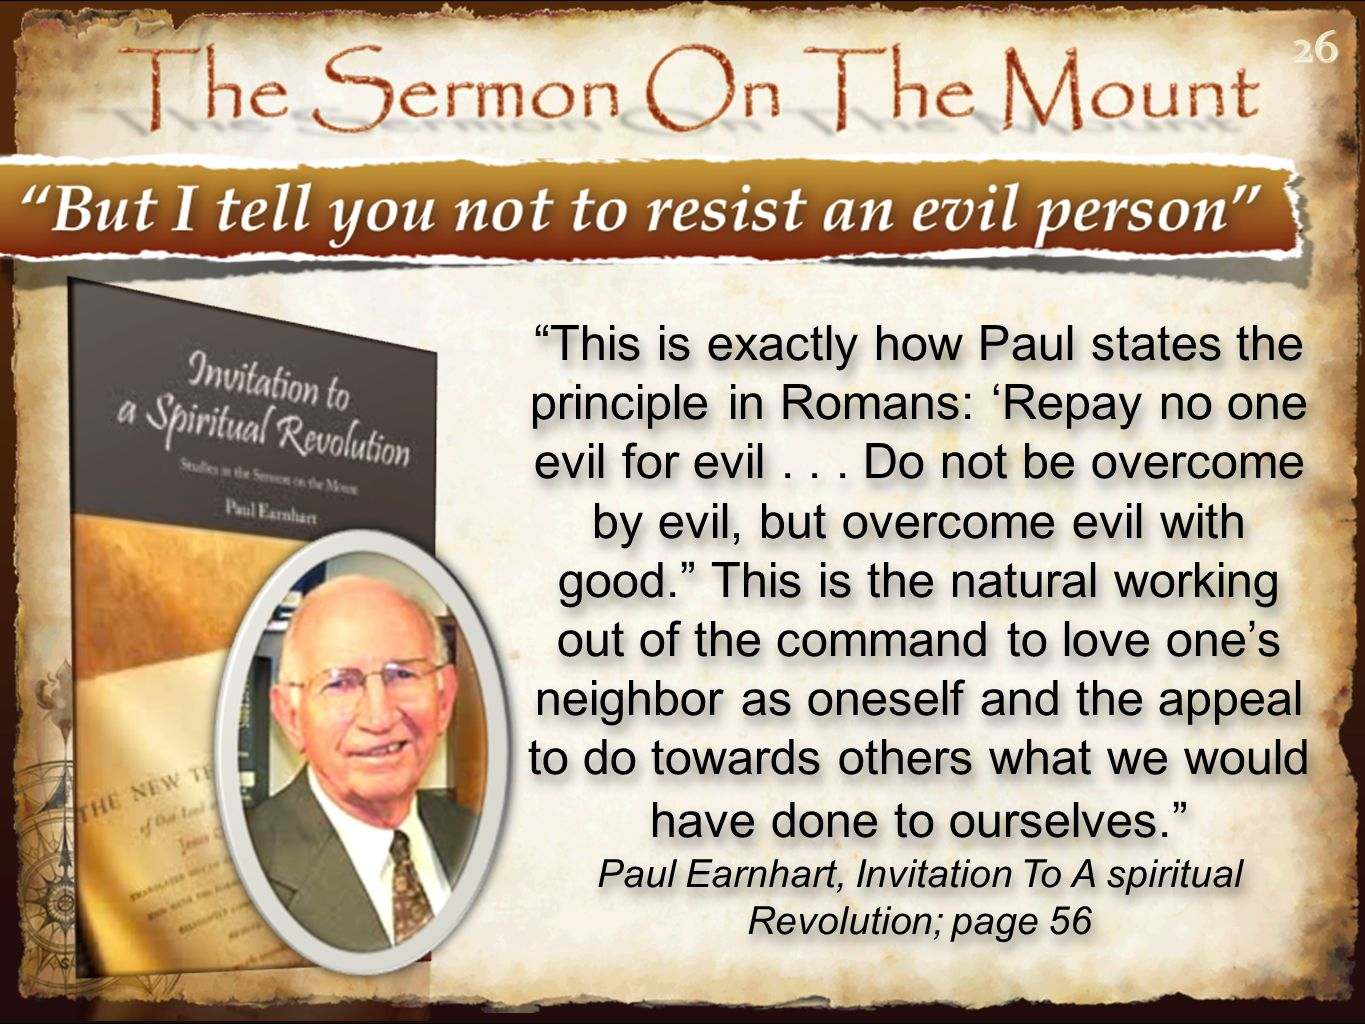 2626 This is exactly how Paul states the principle in Romans: 'Repay no one evil for evil...